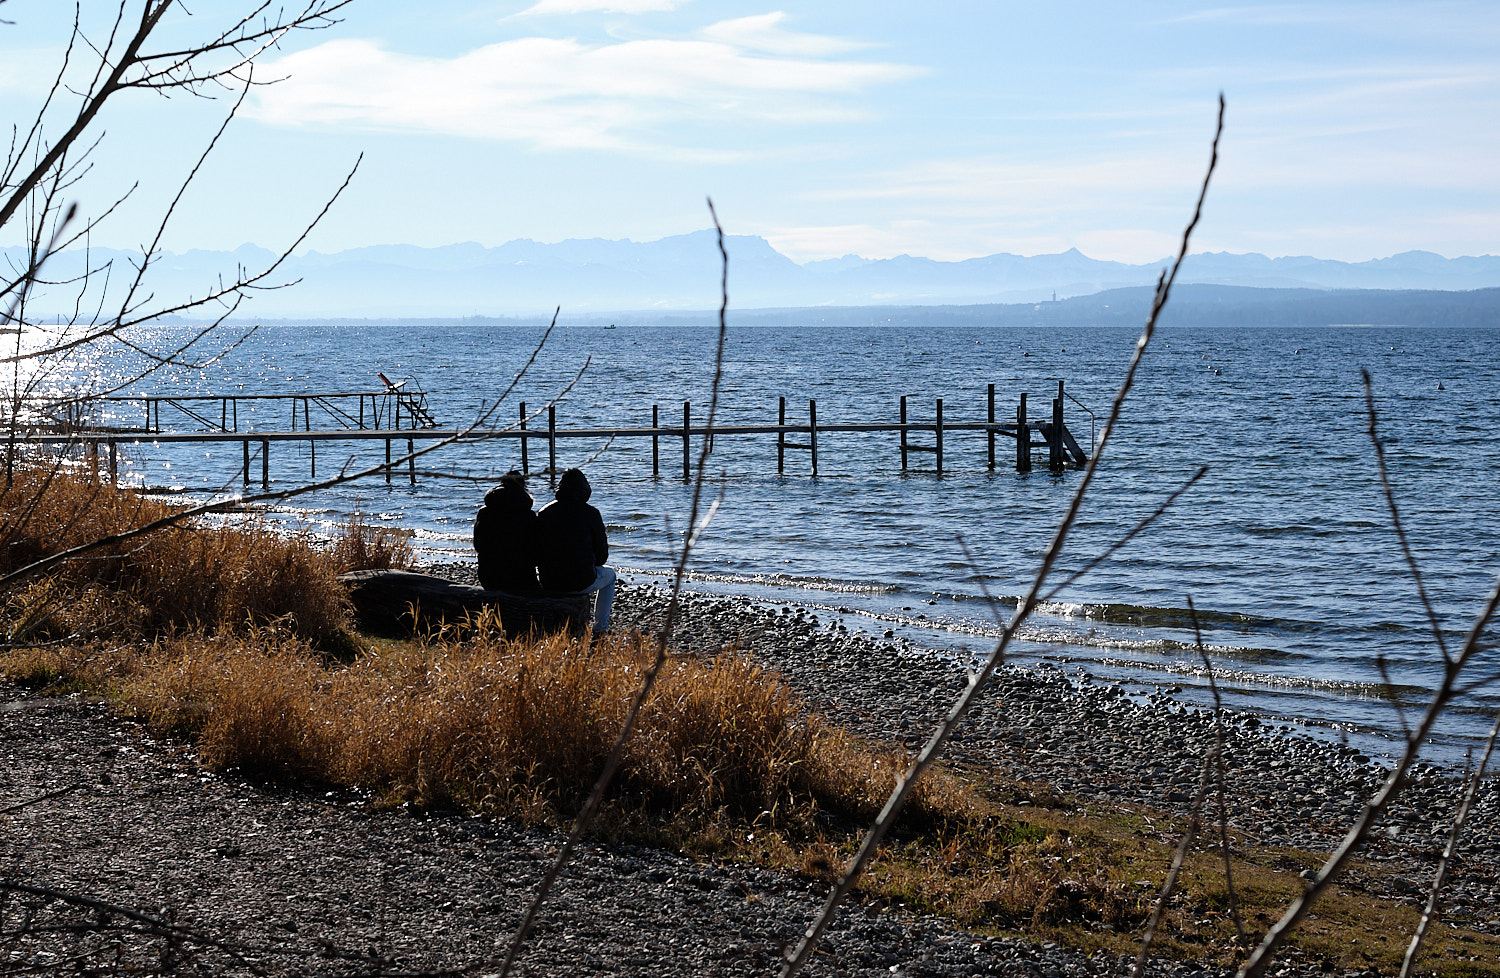 Ammersee, north of Herrsching